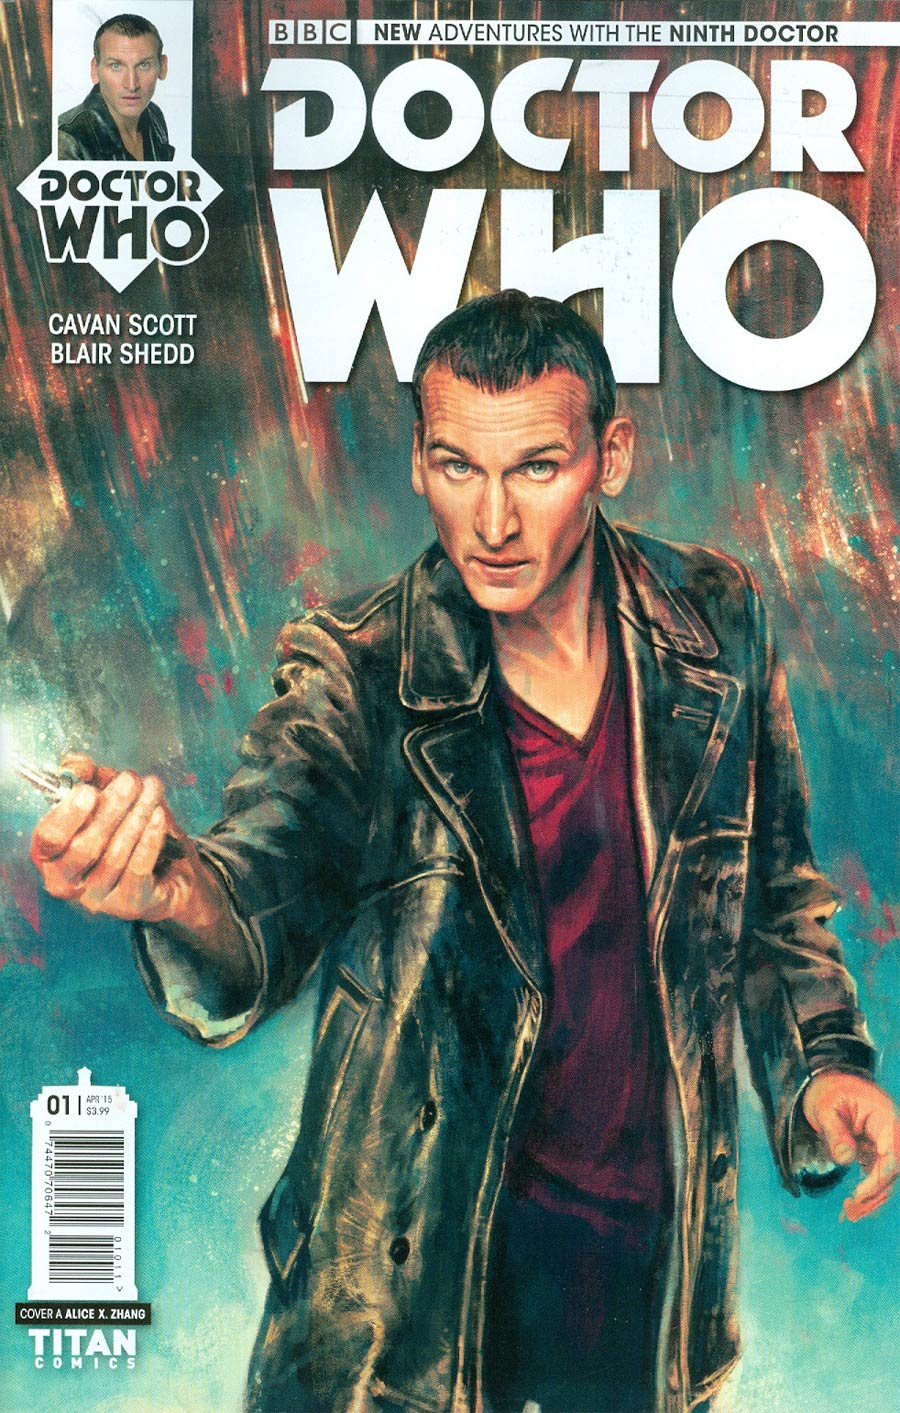 Doctor Who 9th Doctor #1 Cover A Regular Alice X Zhang Cover